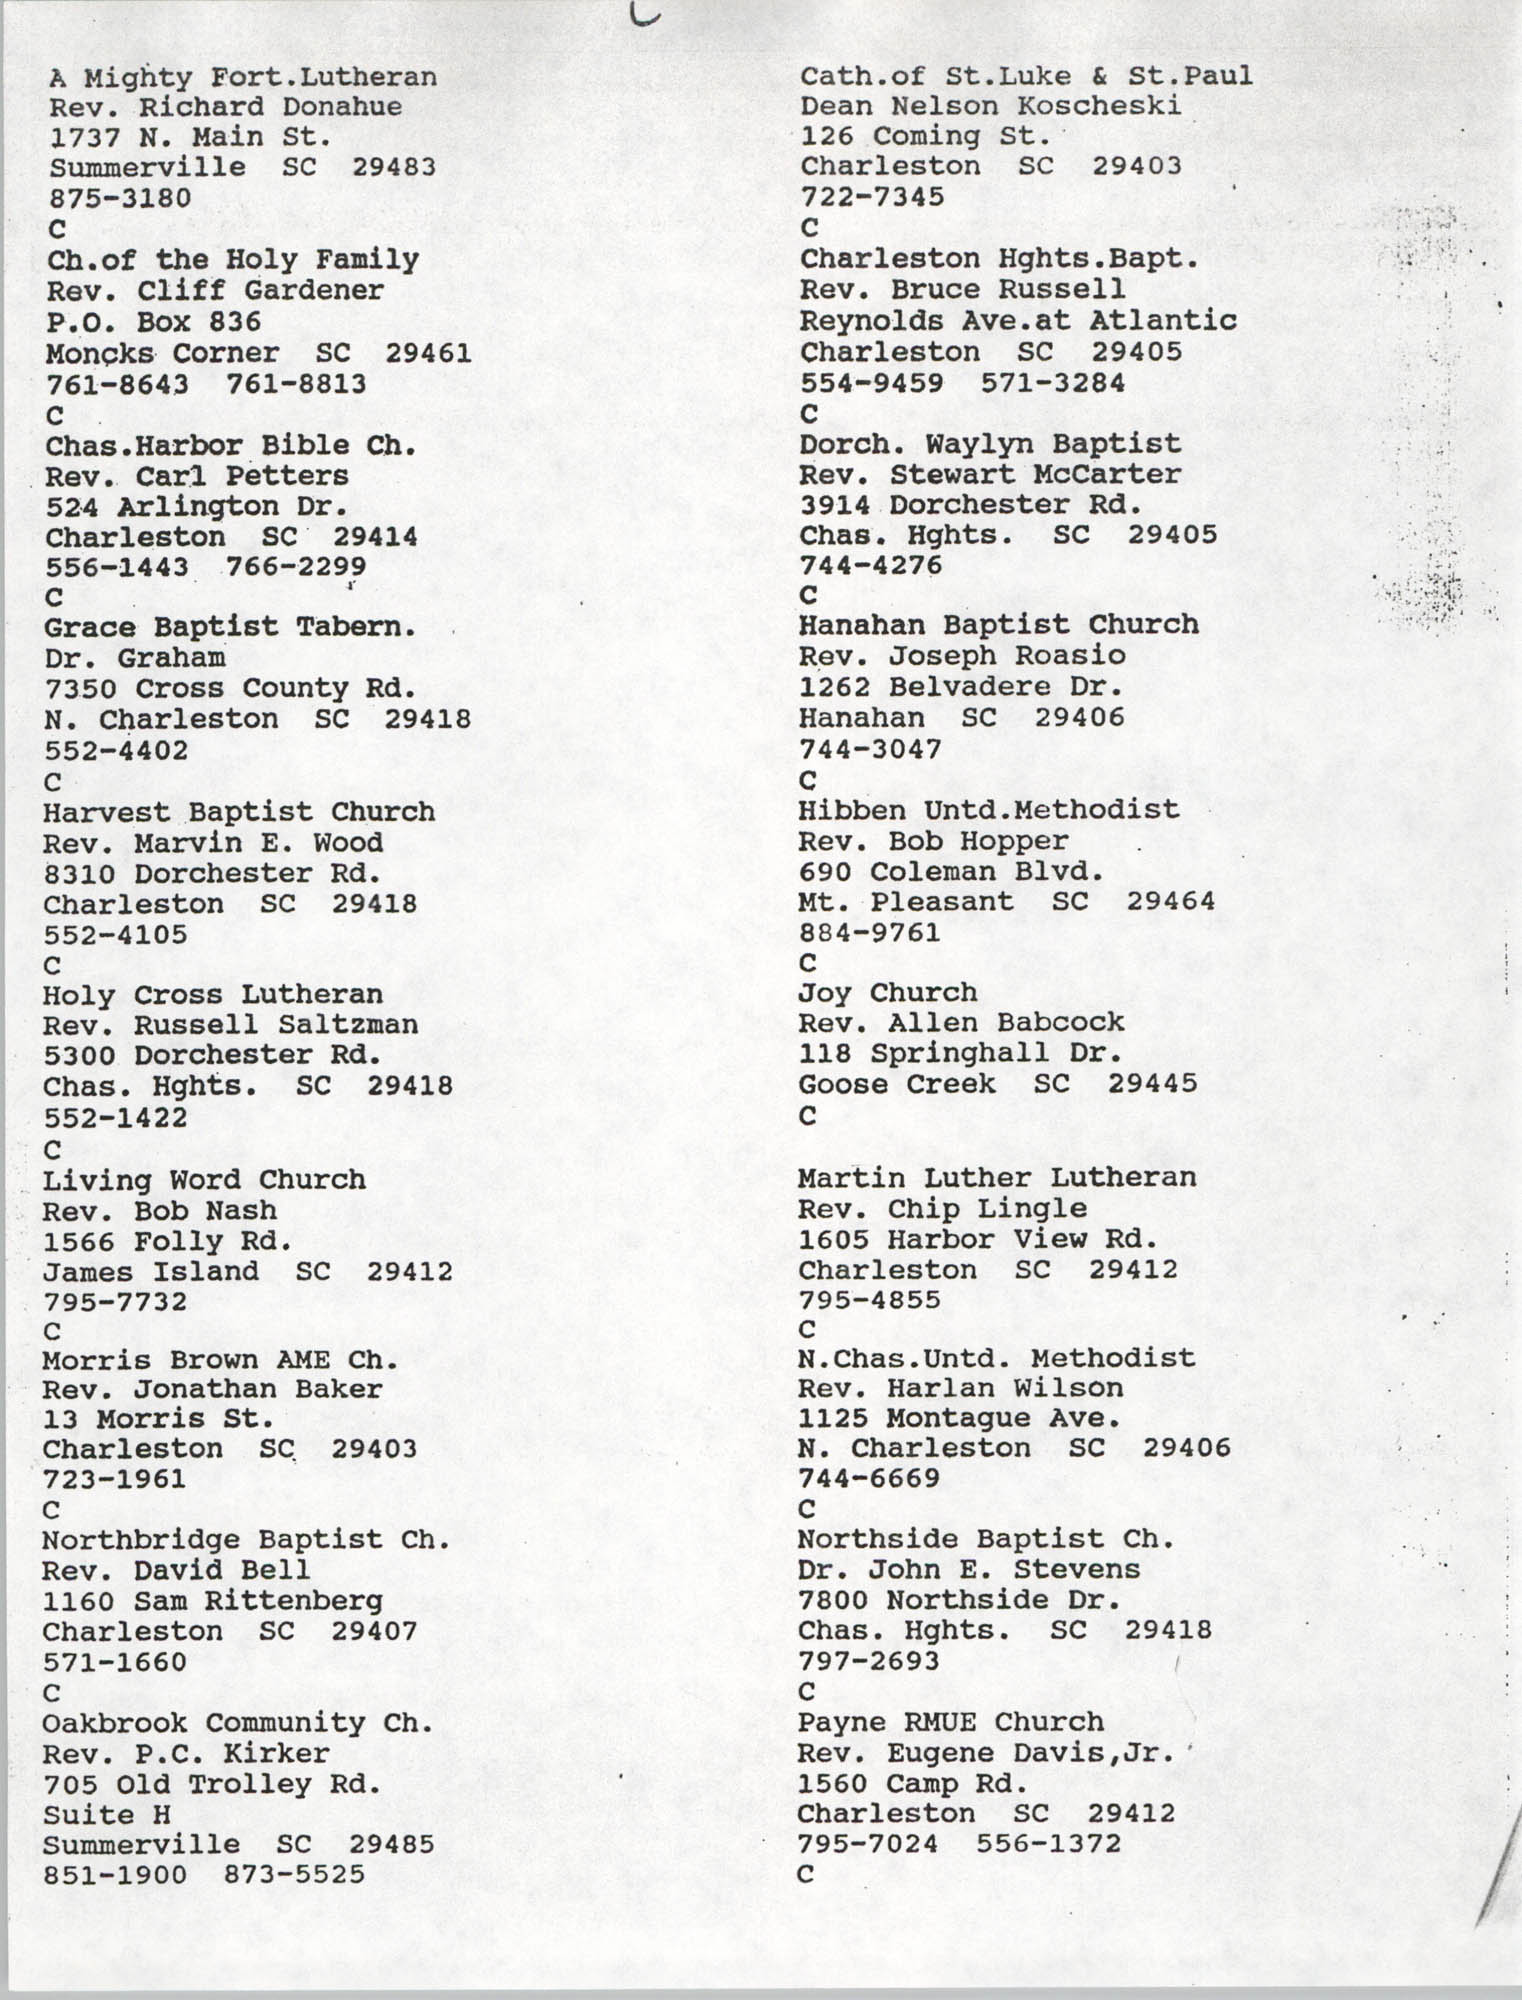 Church Contact List, Charleston Chapter of the NAACP, Page 16